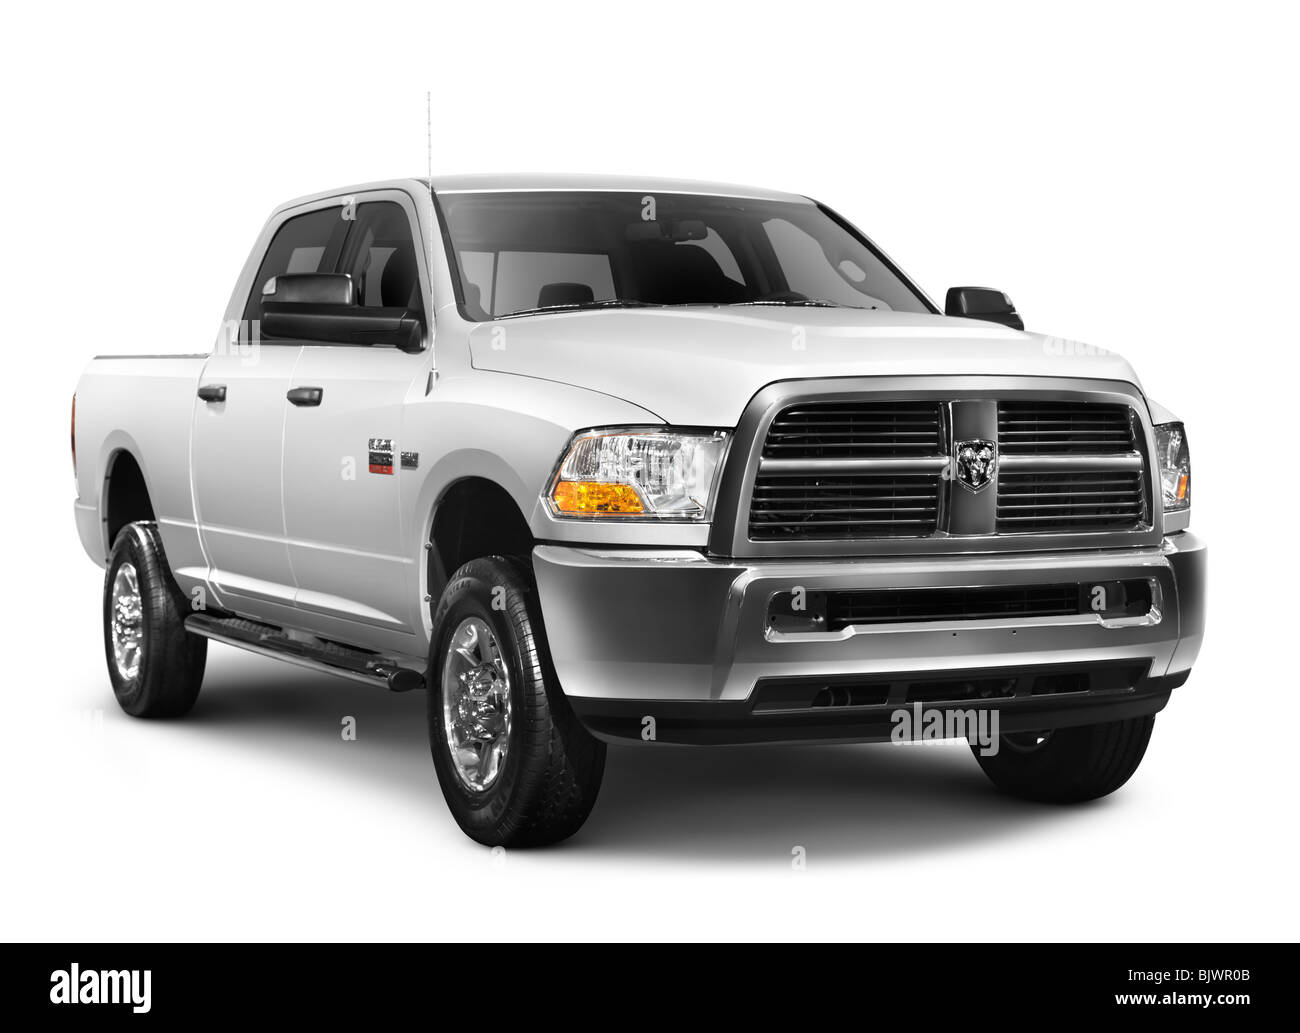 White 2010 Dodge RAM 2500 heavy duty pickup truck isolated on white background with clipping path - Stock Image